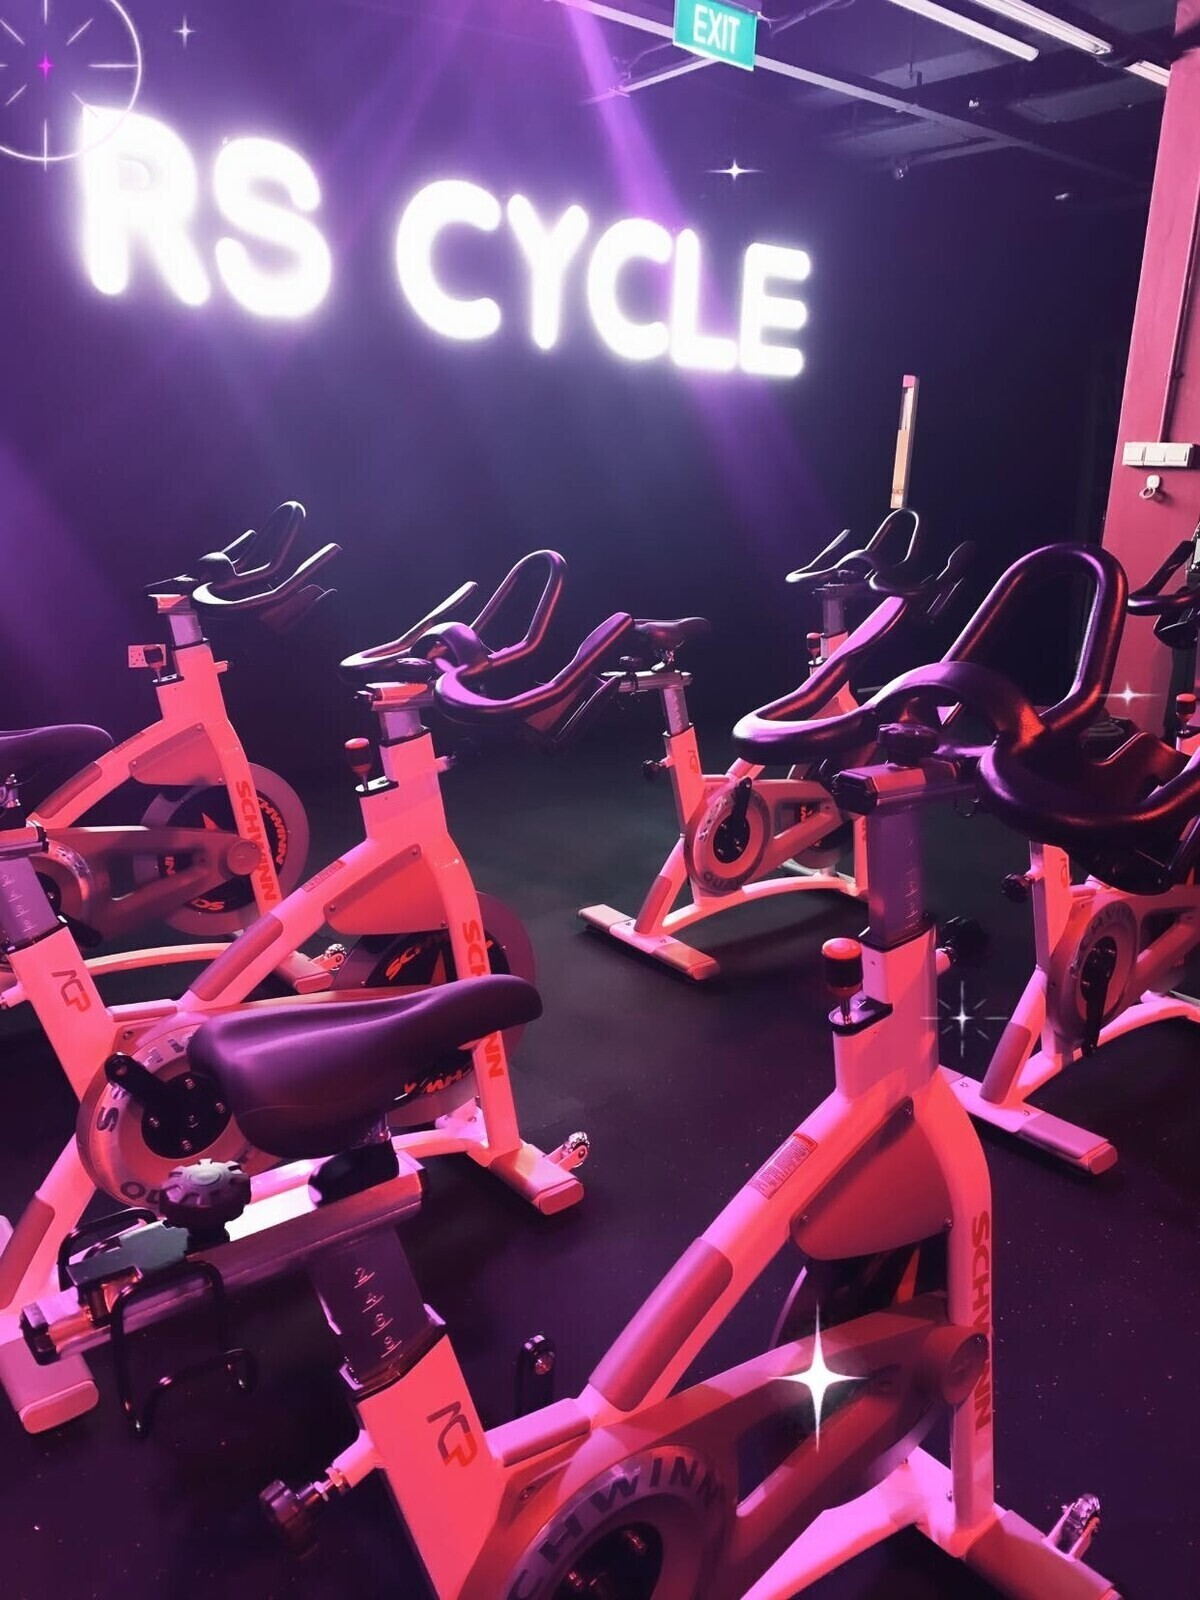 Inside the studio of RS Cycle laden with spin bikes